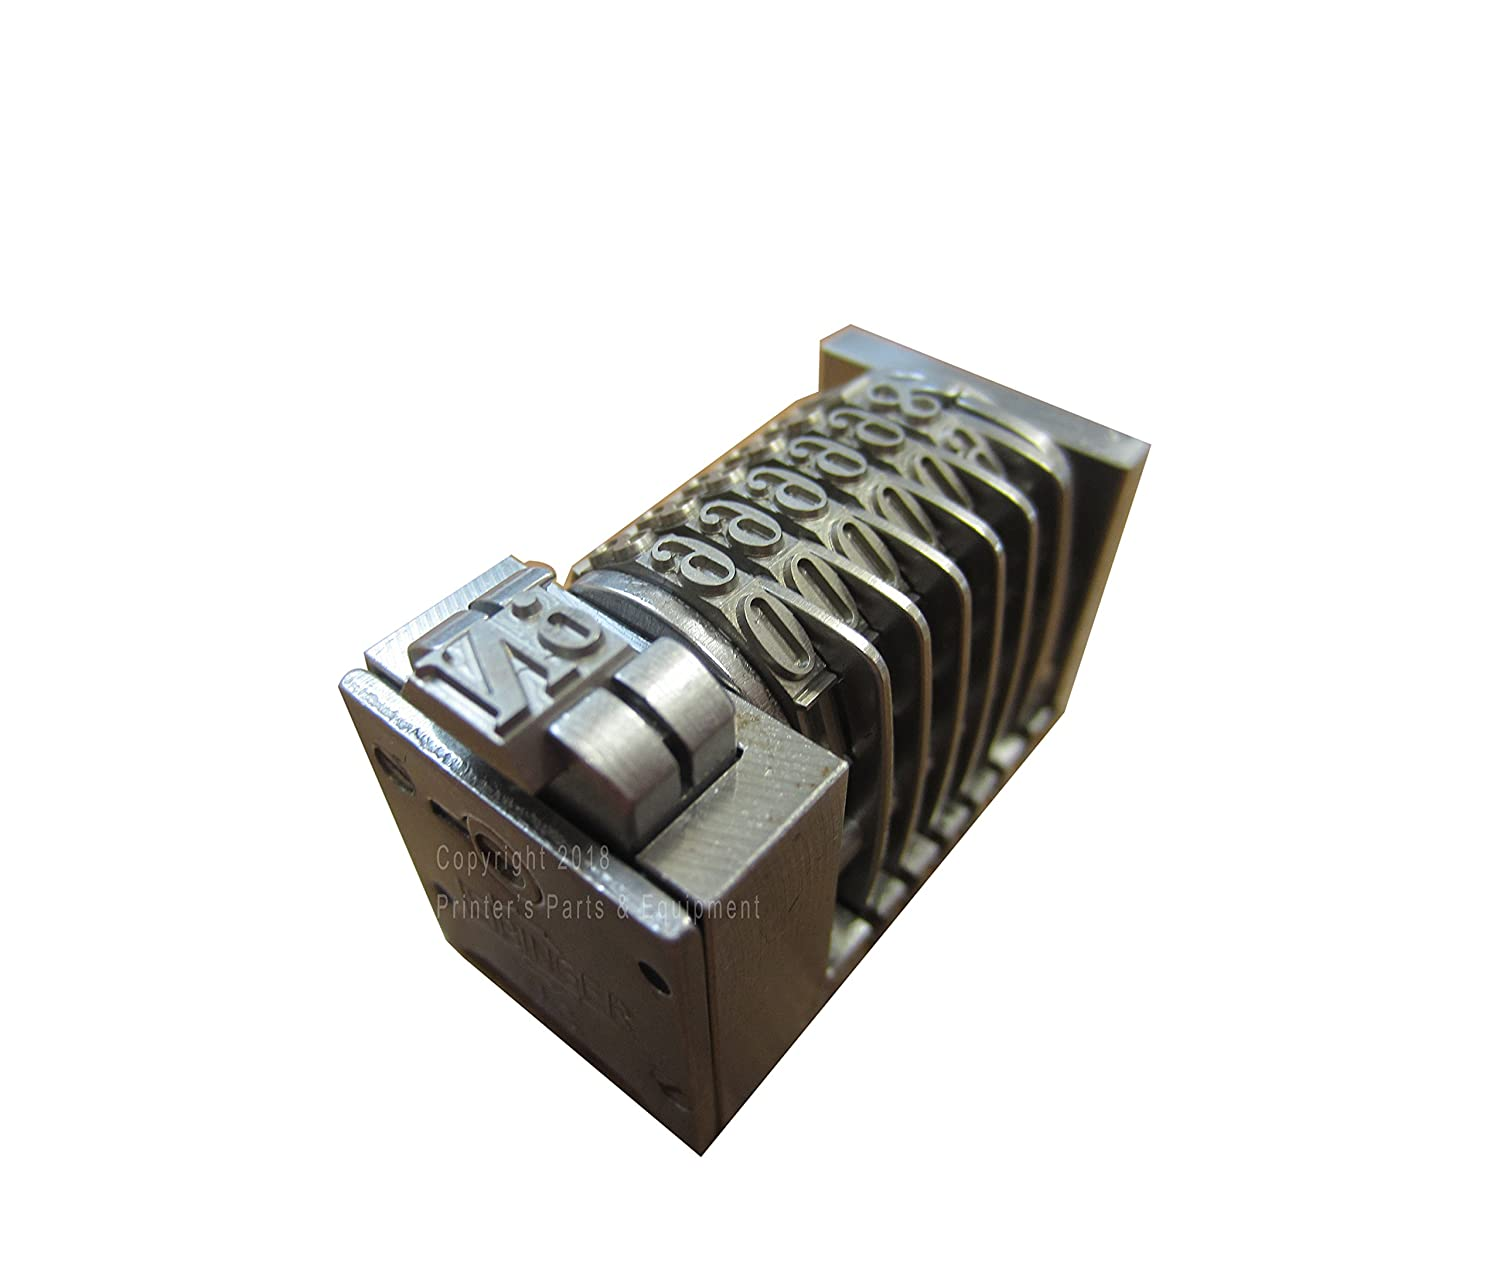 Printing & Graphic Arts Numbering Machines Letterpress Numbering Machine American Customers First